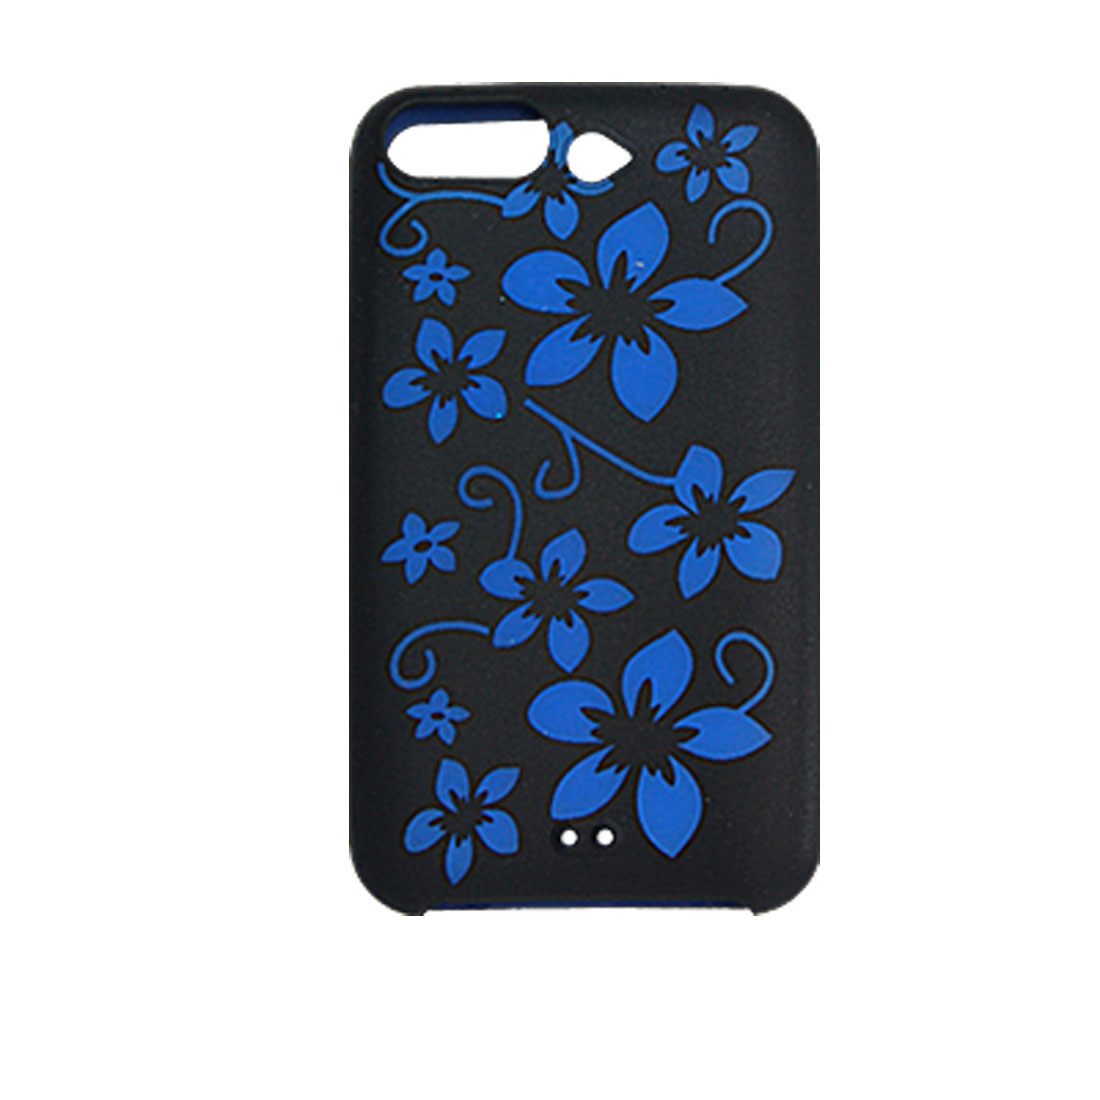 Flower Pattern Silicone Case for iPod Touch 2